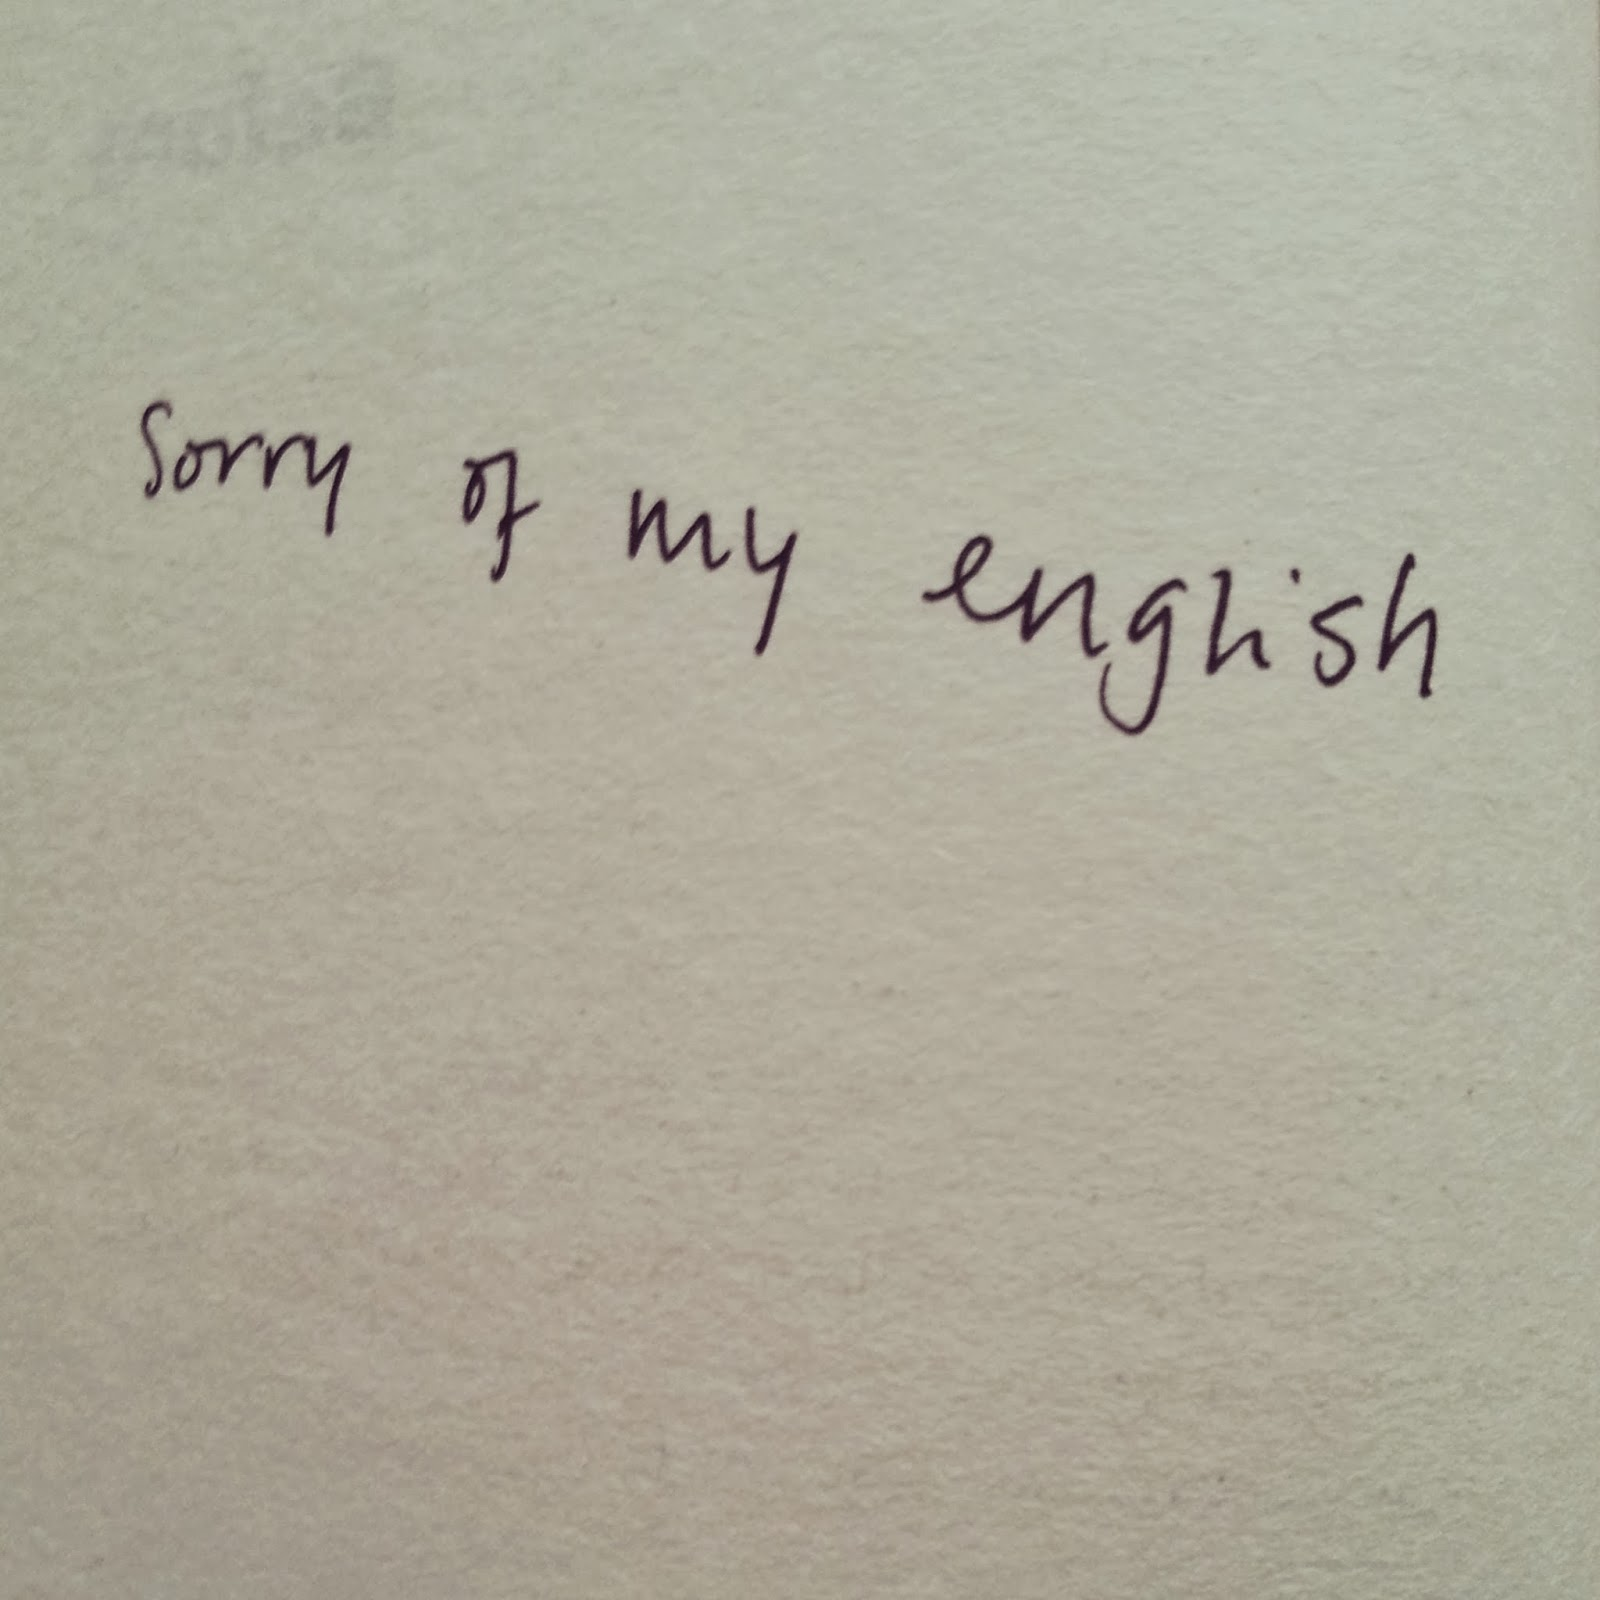 apologetic in a sentence